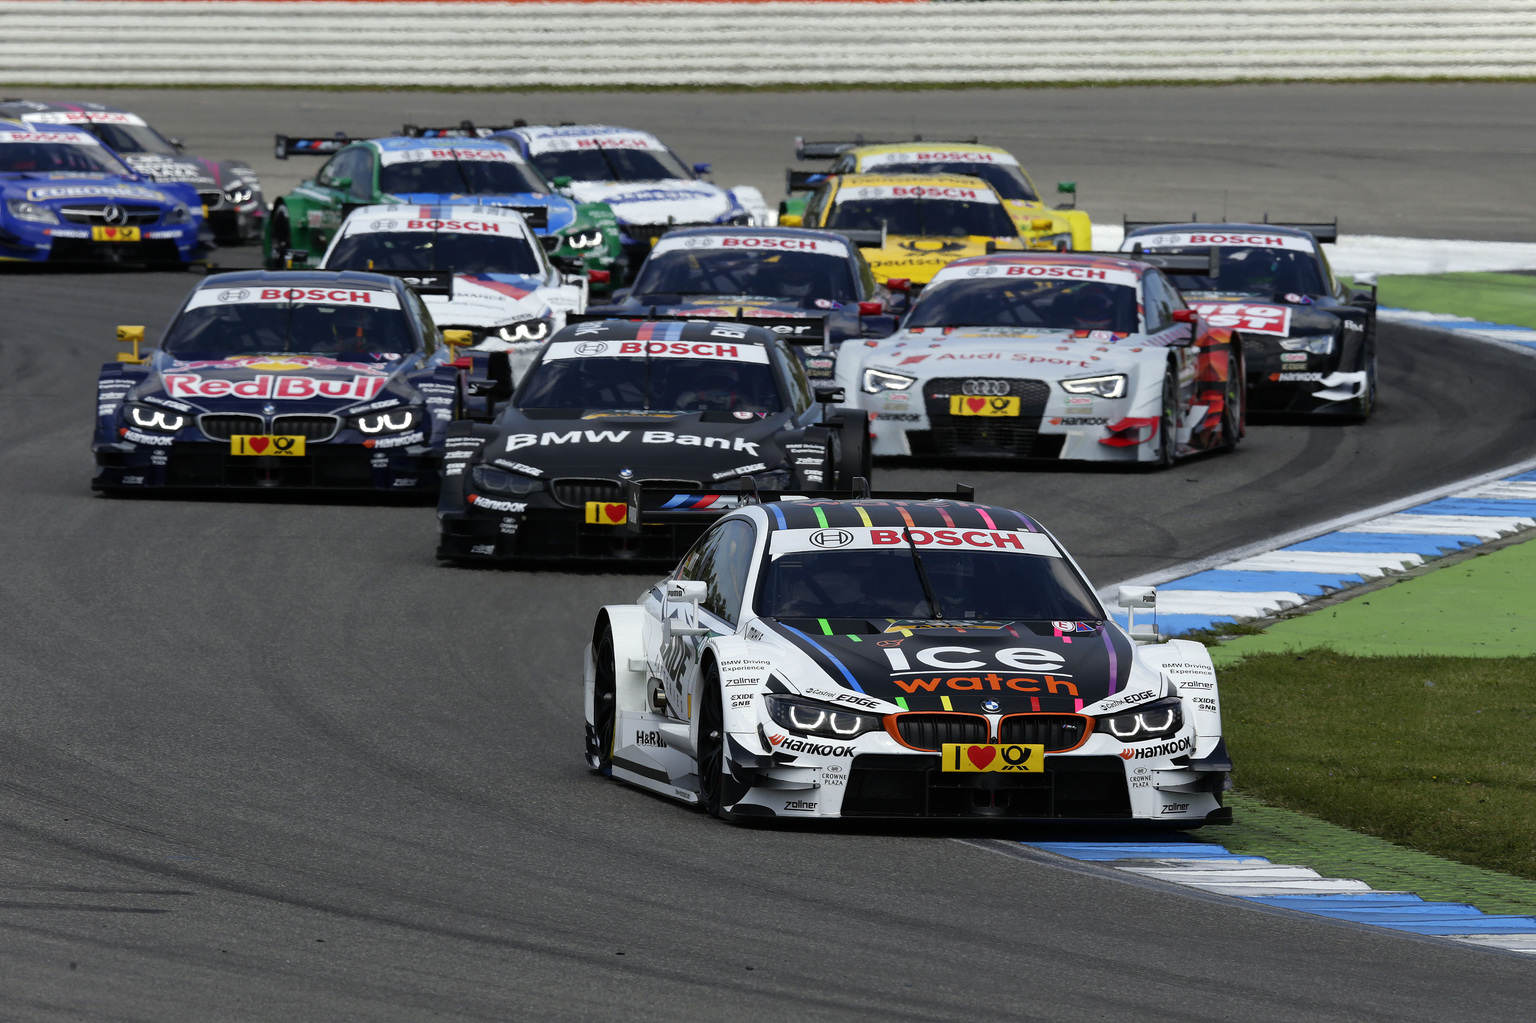 Hockenheim (DE) 04th May 2014. BMW Motorsport, Marco Wittmann (DE) Ice-Watch BMW M4 DTM, Bruno Spengler (CA) BMW Bank M4 DTM and Antonio Felix da Costa (PT) Red Bull BMW M4 DTM. This image is copyright free for editorial use © BMW AG (05/2014).